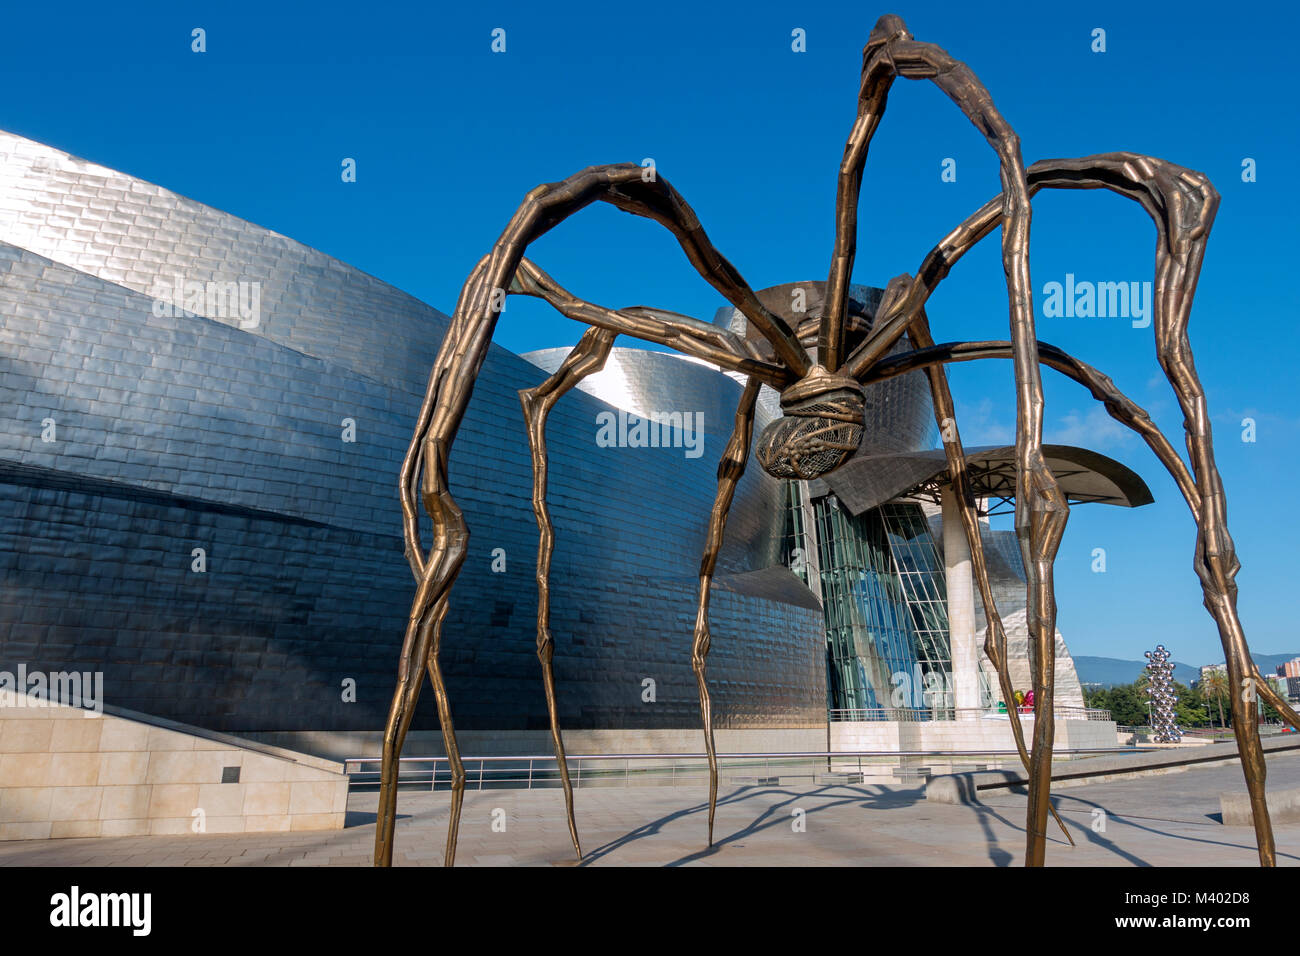 Giant spider scilpture.Artist:Louise Borgeois (1911-2010).Title:Maman (mother).Guggenheim Museum.Bilbao.Spain - Stock Image